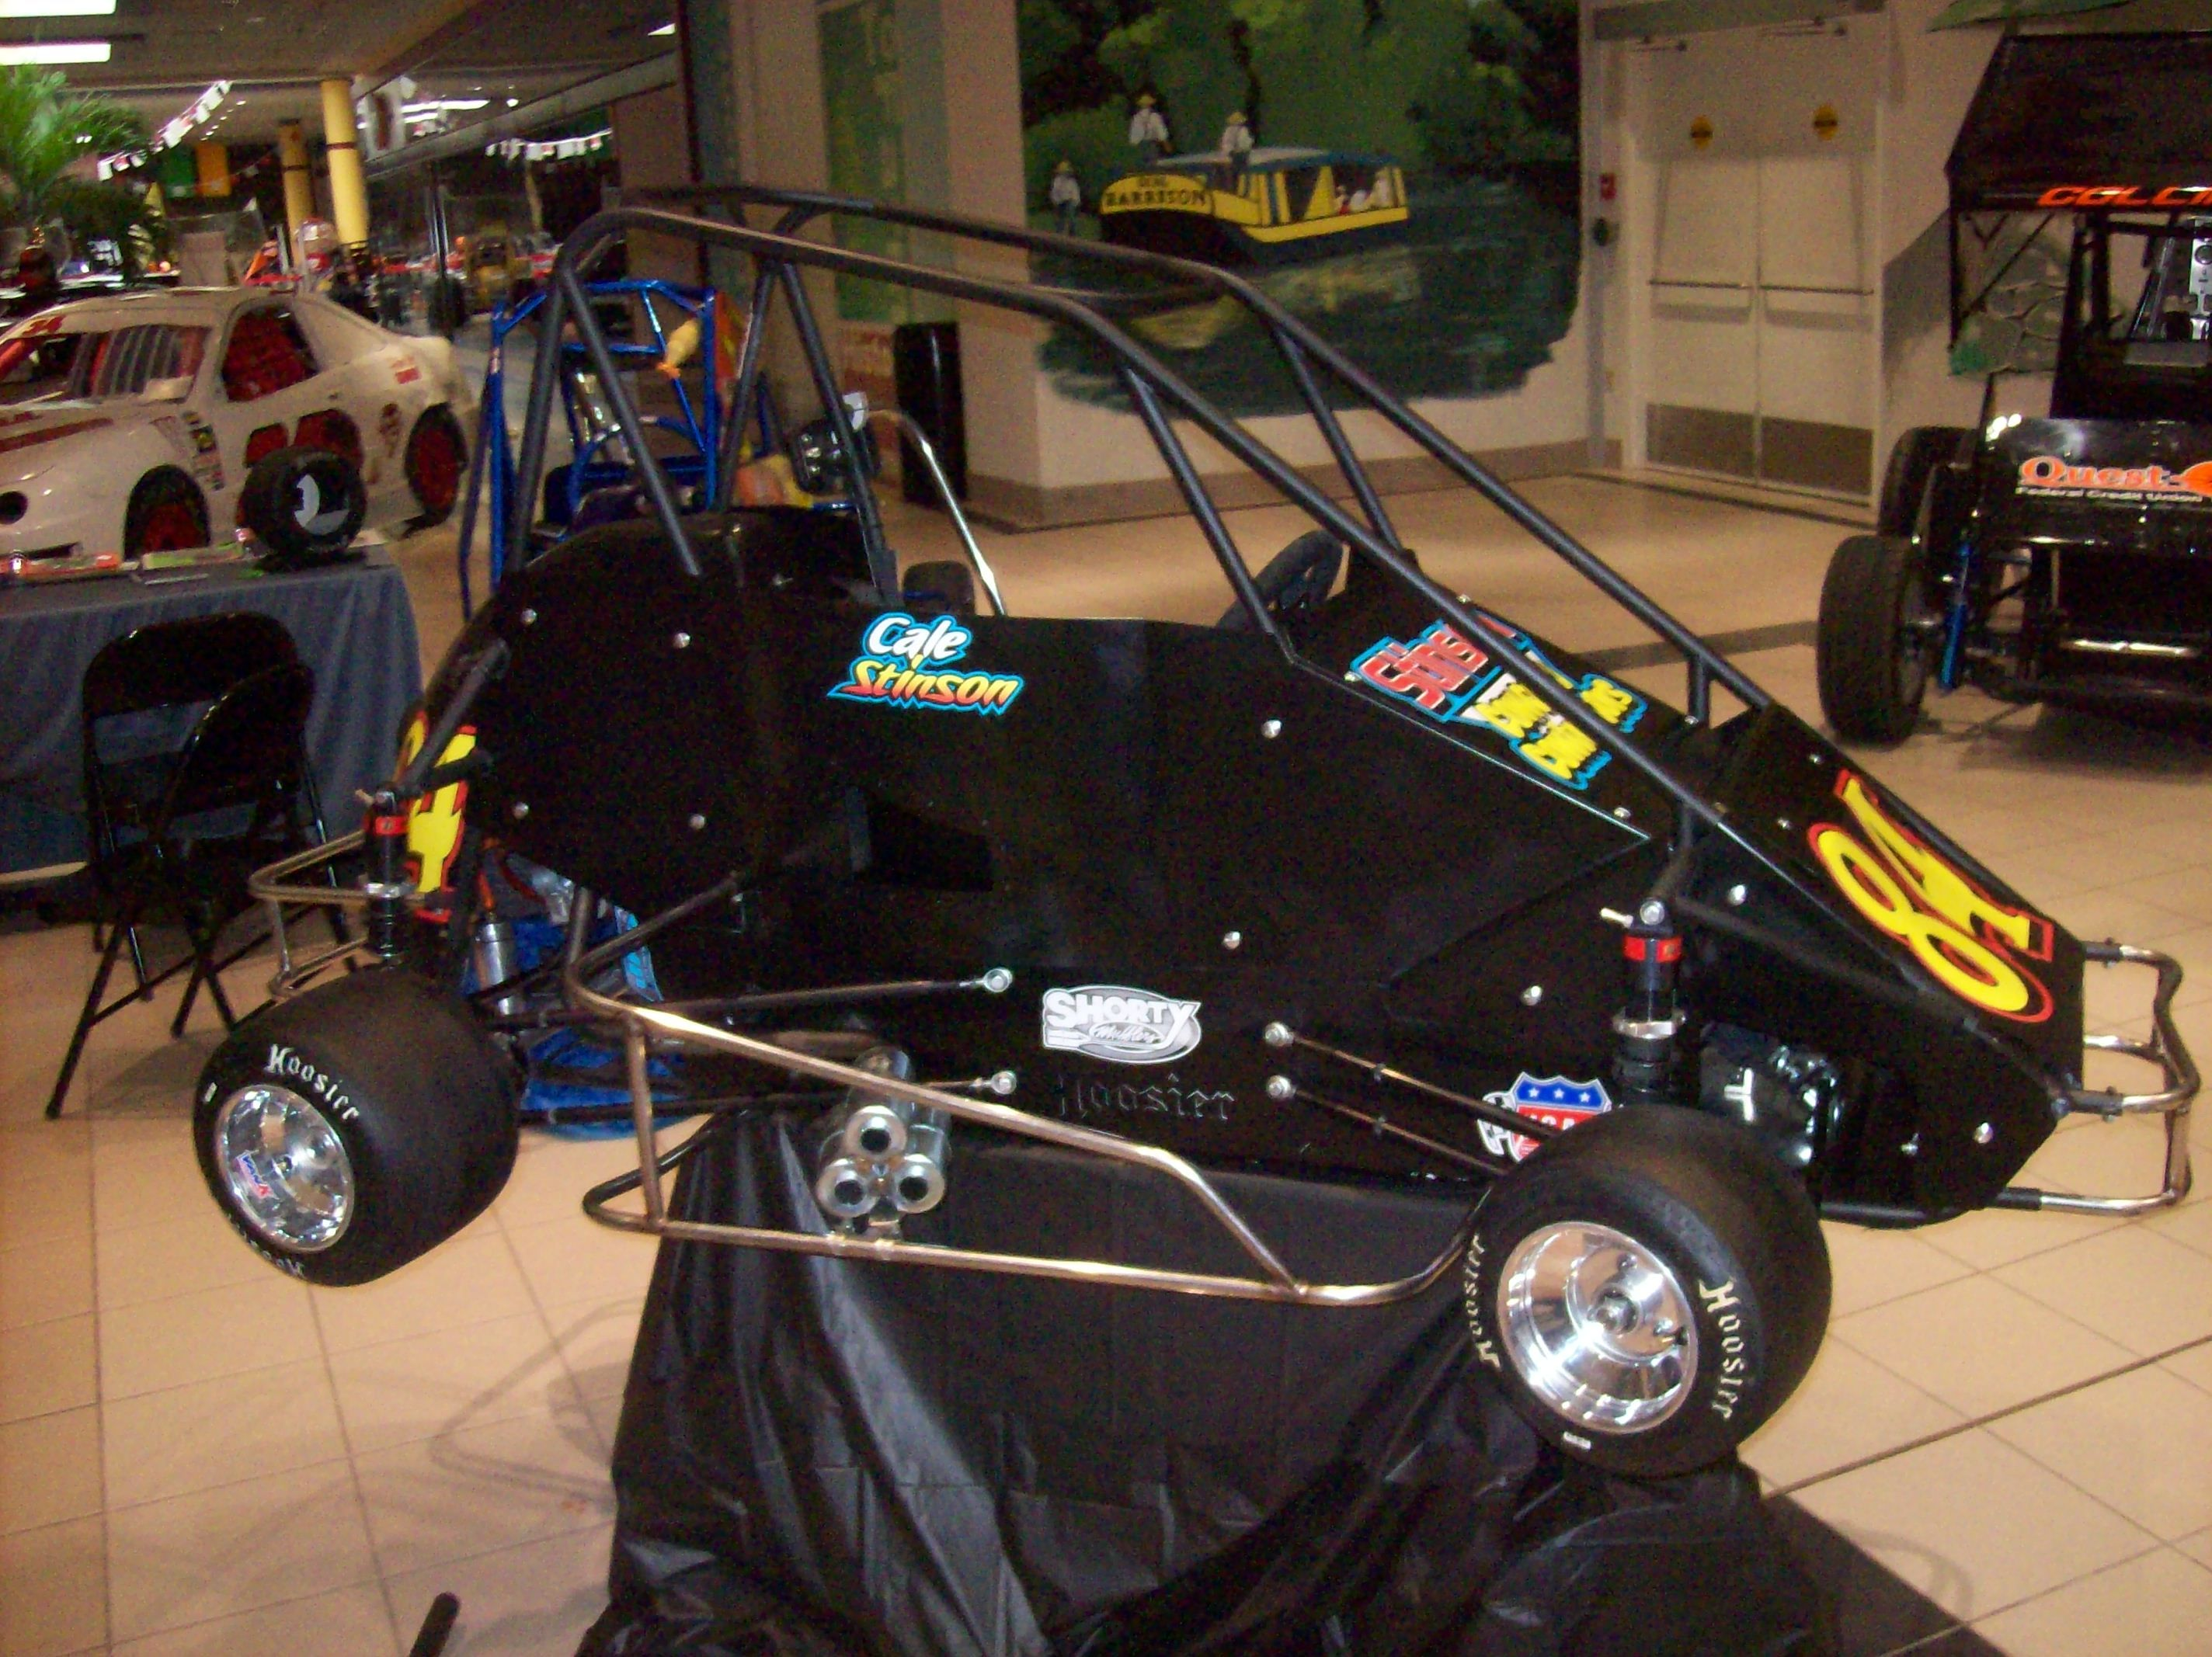 quqrter midget | car shows and racing information around Ohio ...